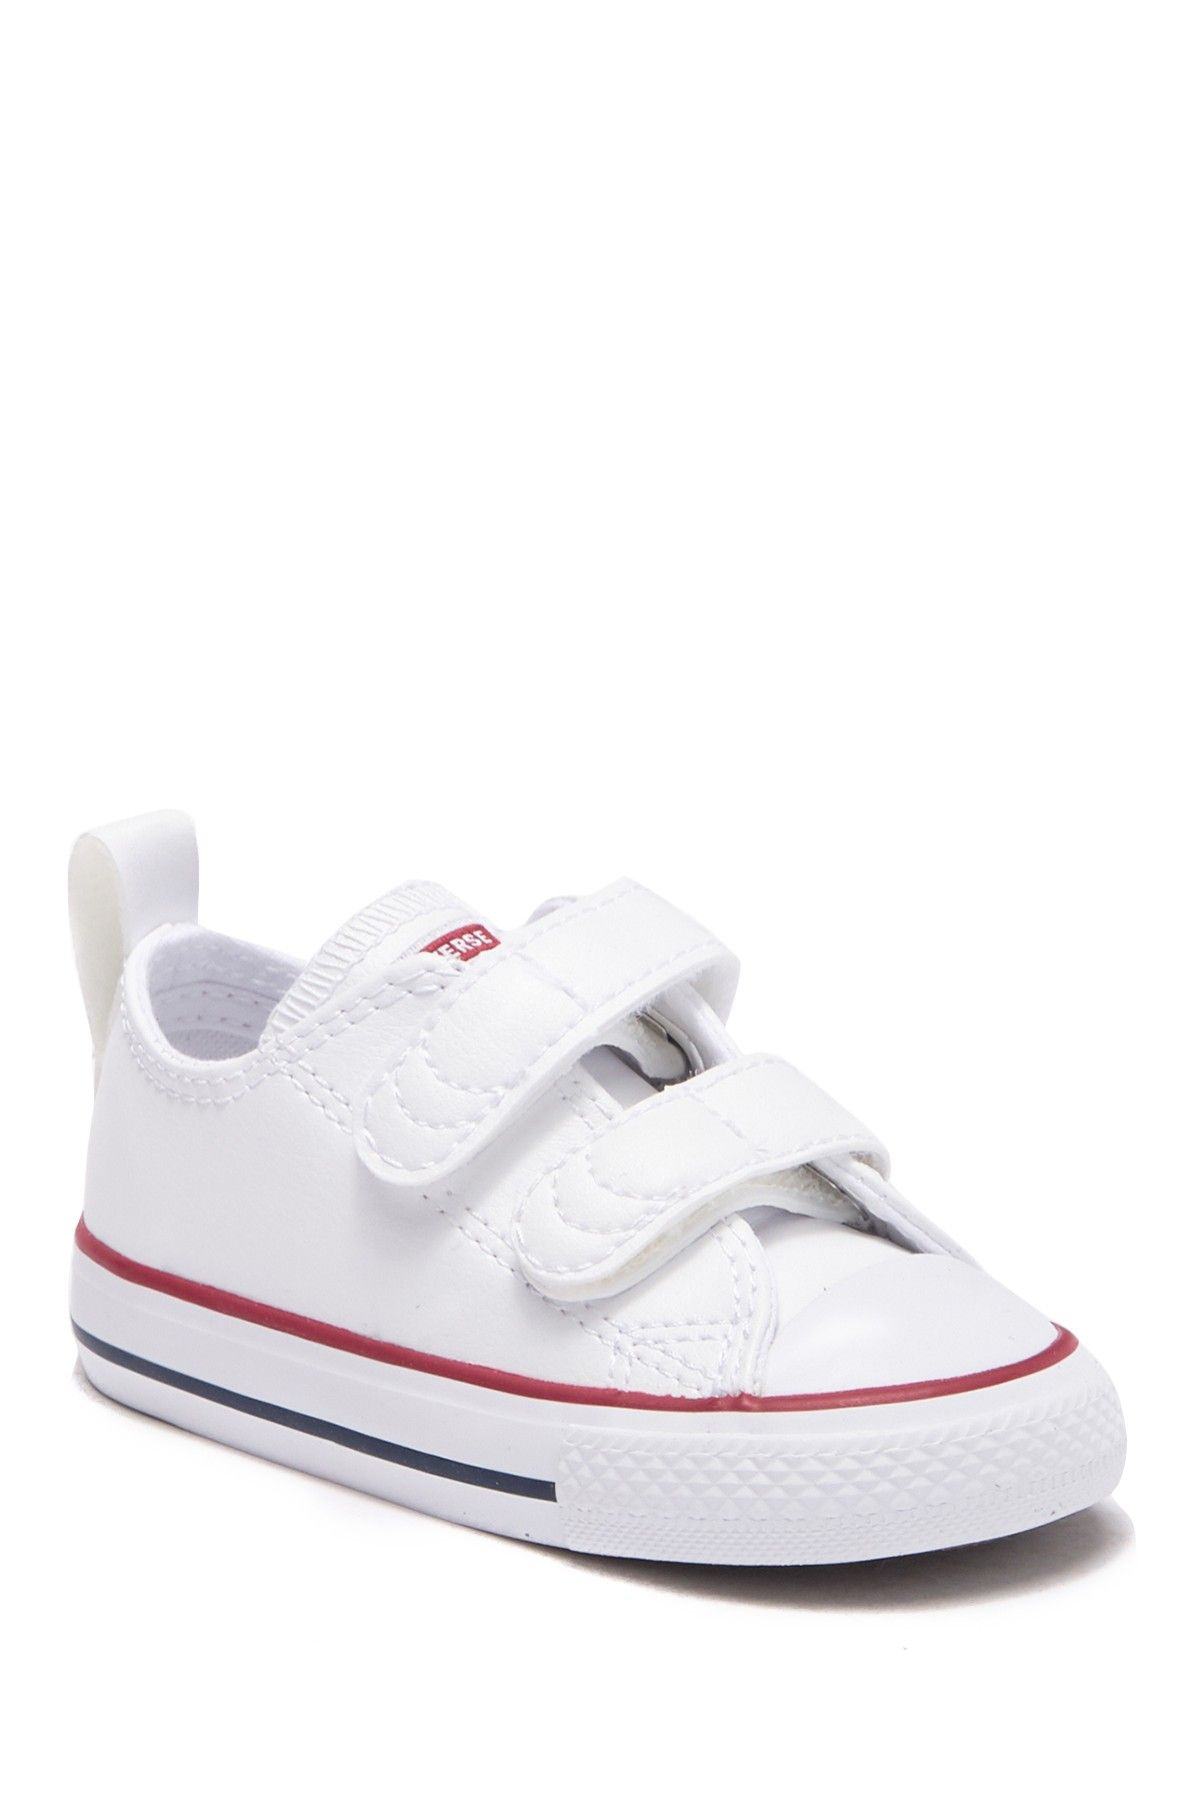 nordstrom shoes for toddlers